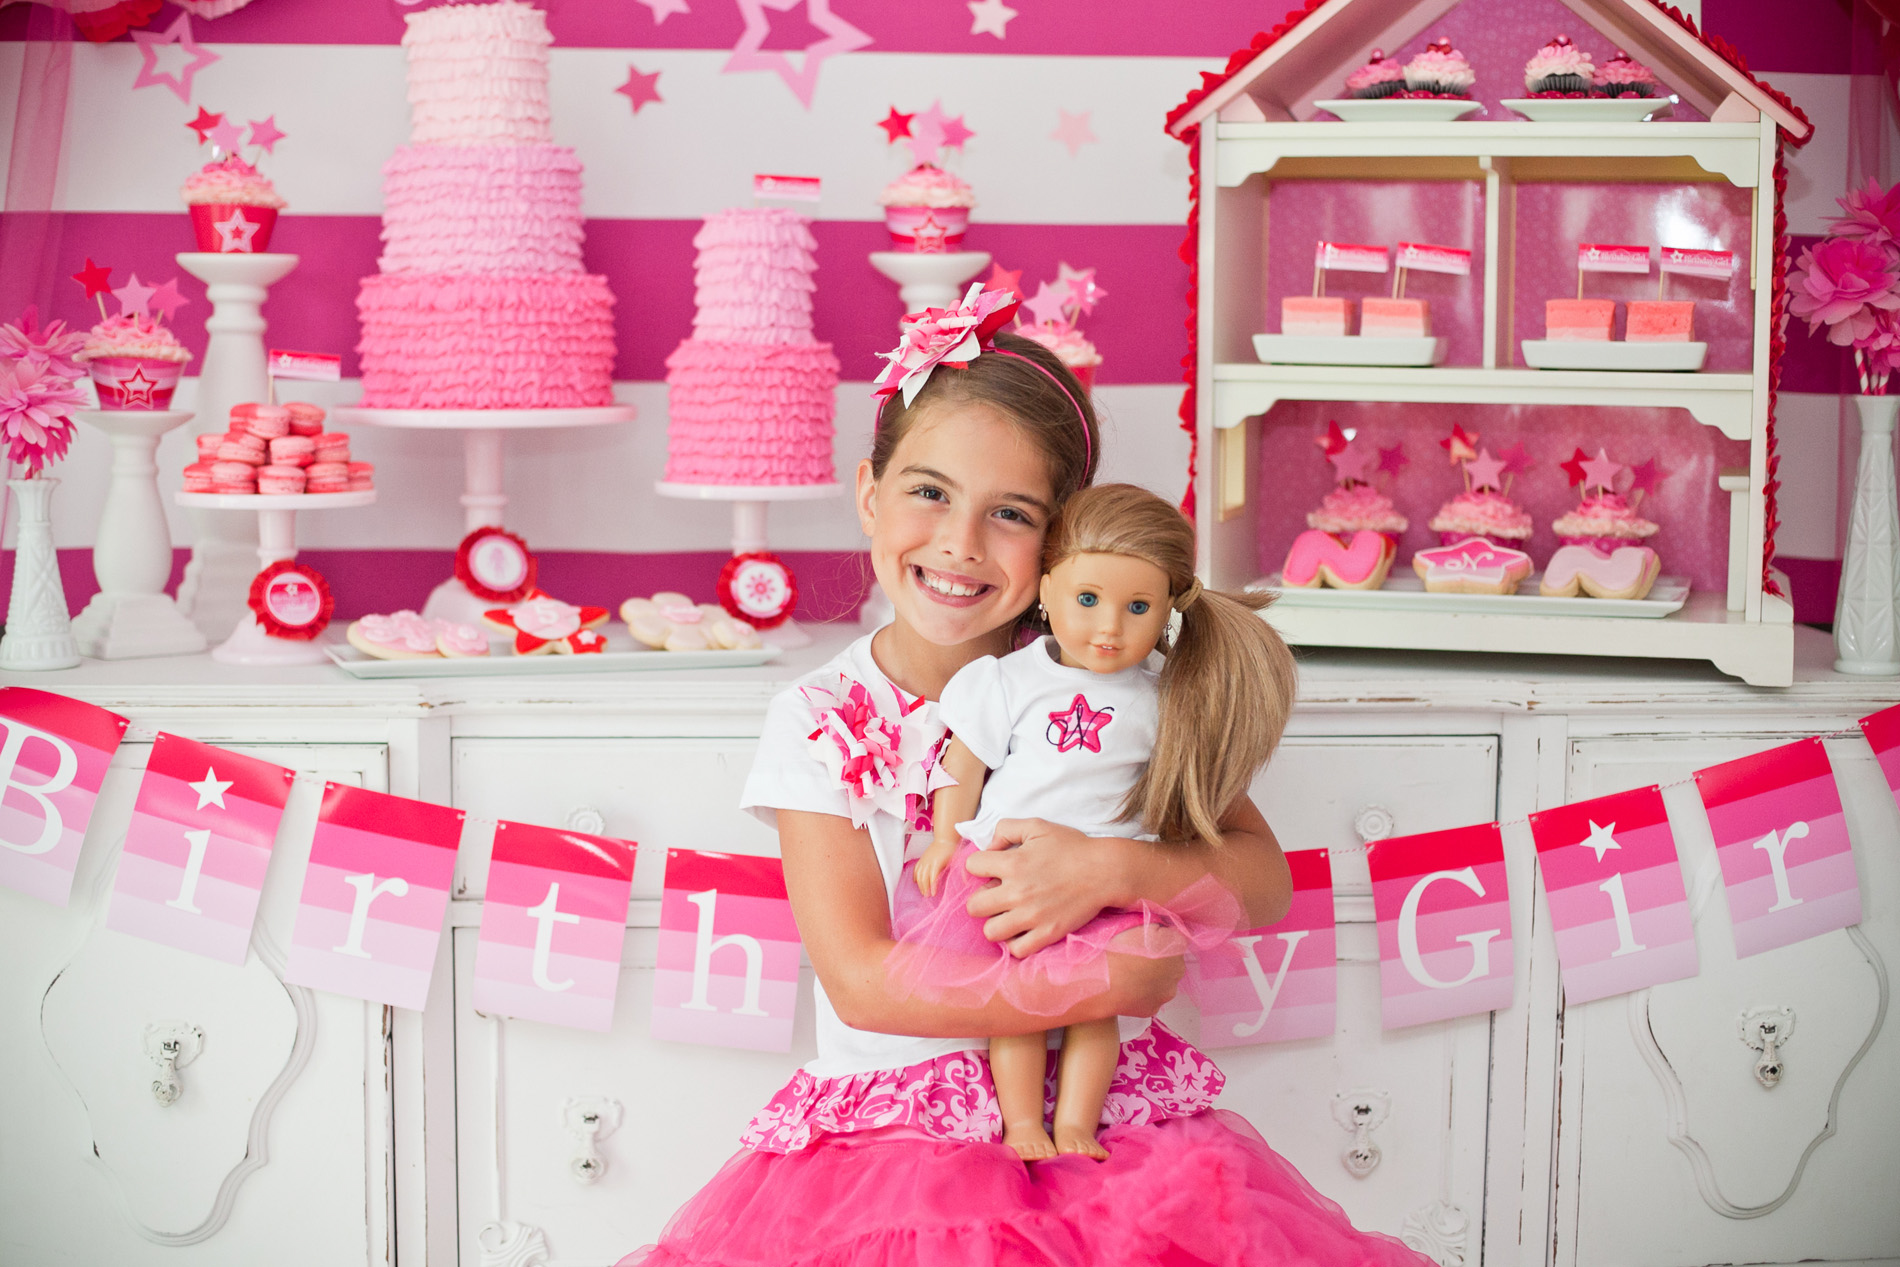 Birthday Party Themes For Your Little Girl Part 3 Likewike